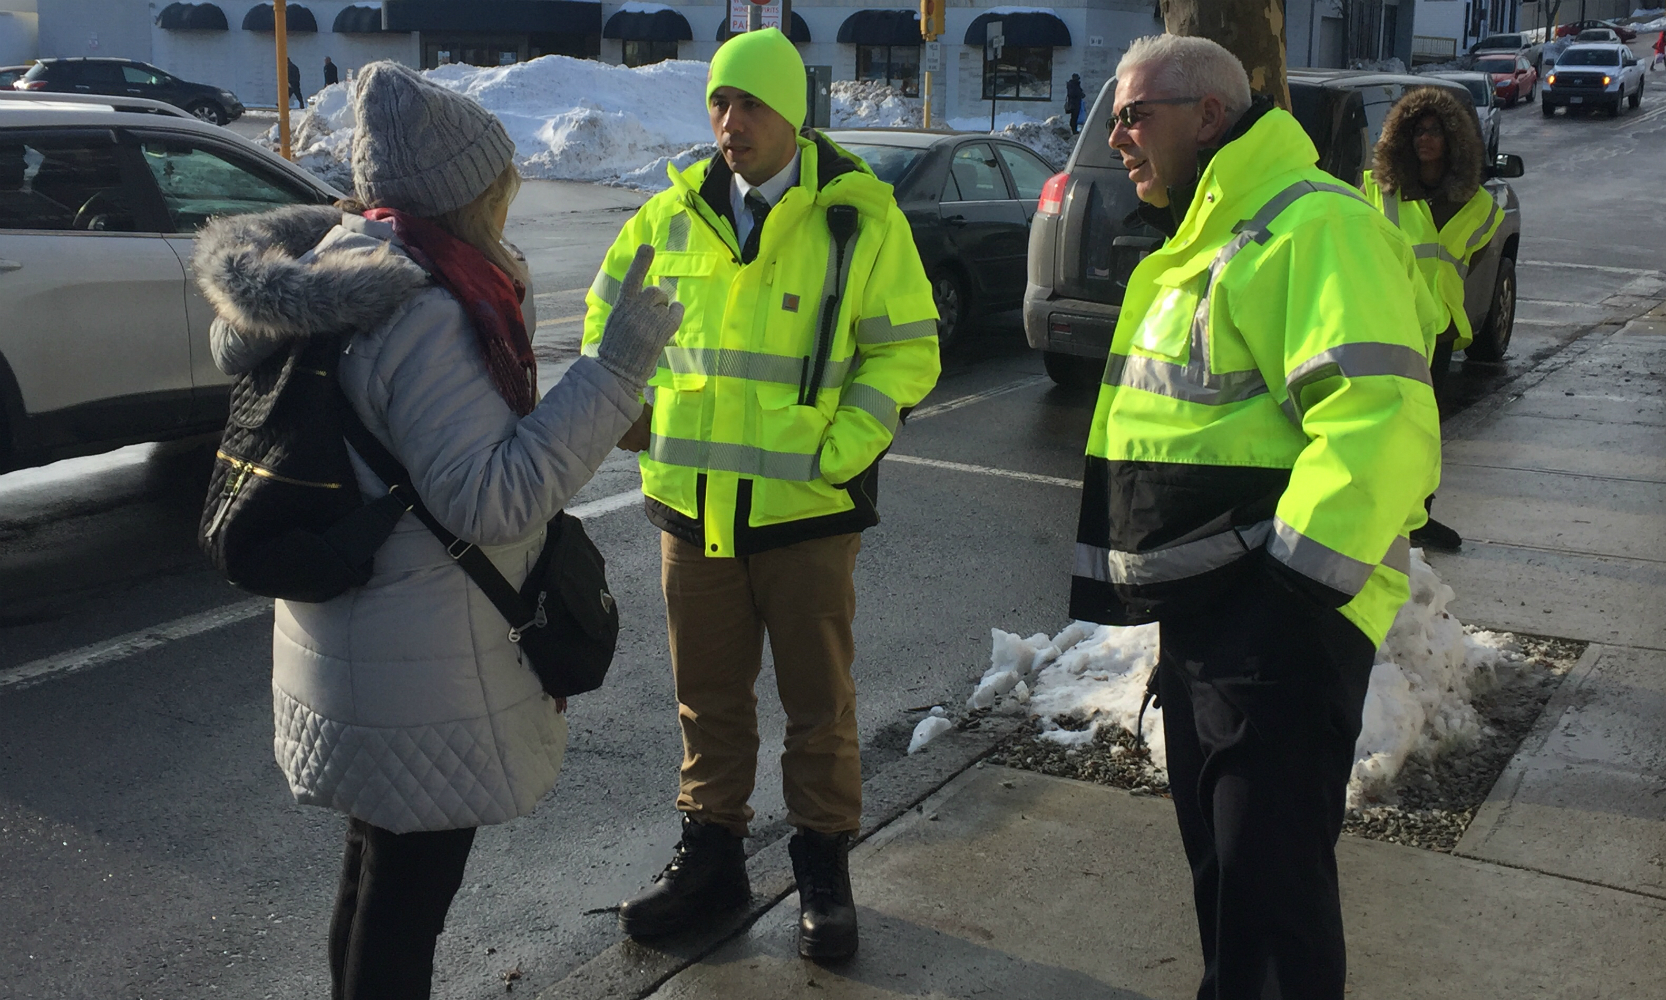 Two crewmen in neon jackets answer the question of a woman.